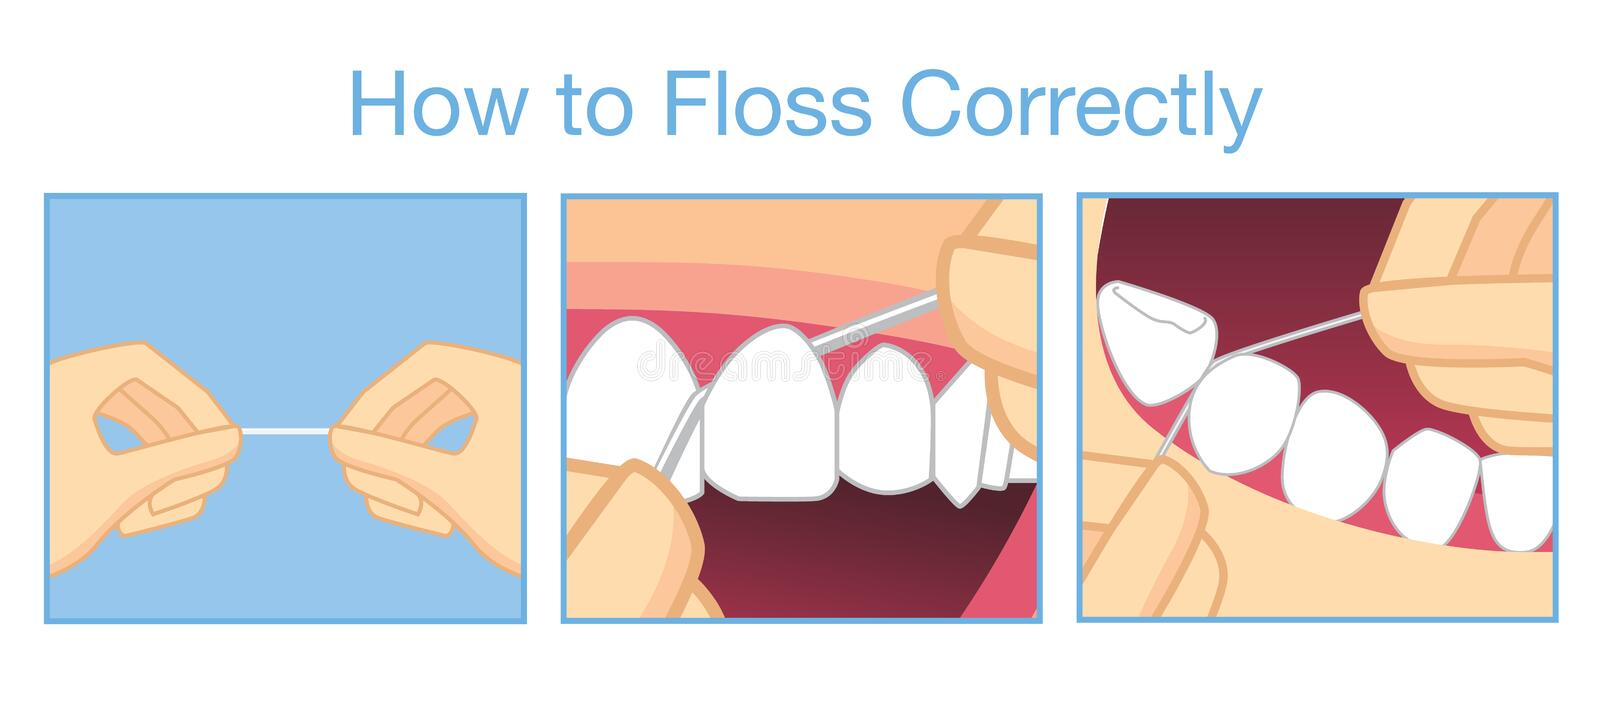 How to floss correctly for cleaning teeth. Illustration about step to floss correctly for cleaning teeth stock illustration